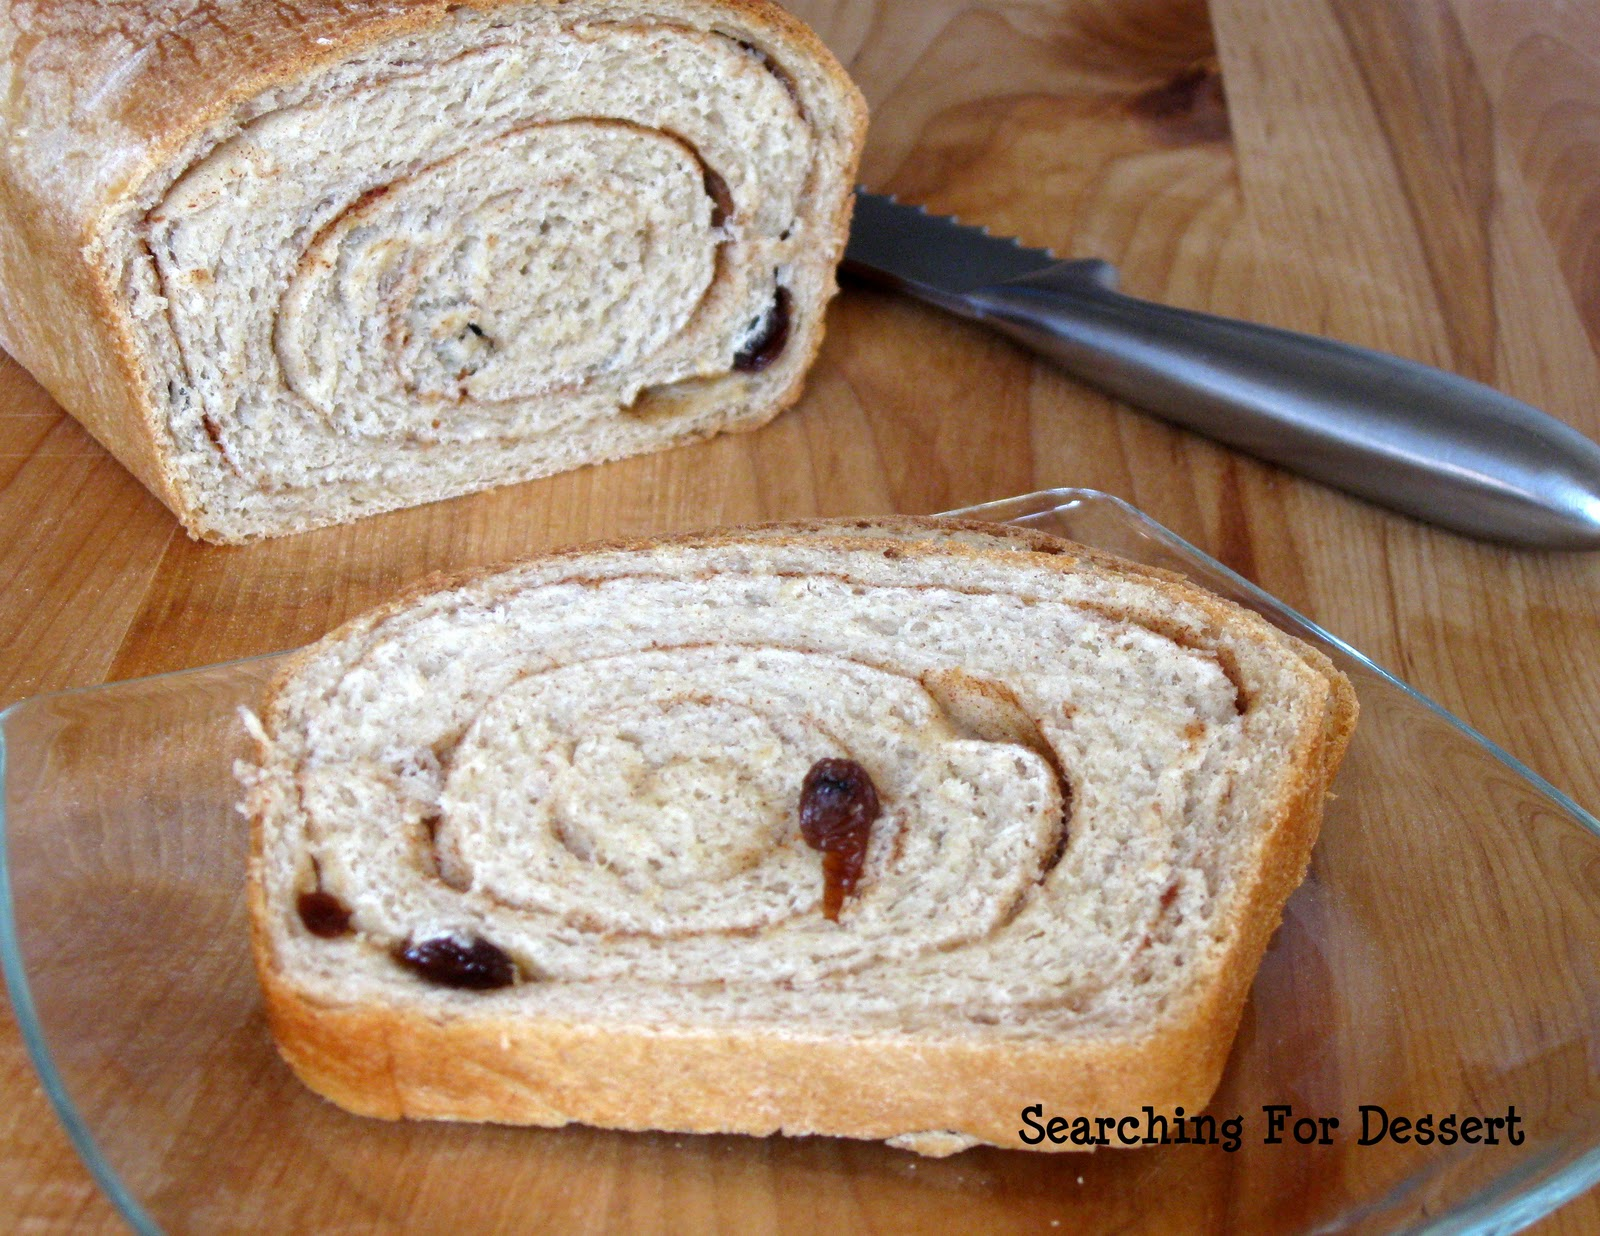 Cinnamon Raisin Swirl Bread | Searching for Dessert